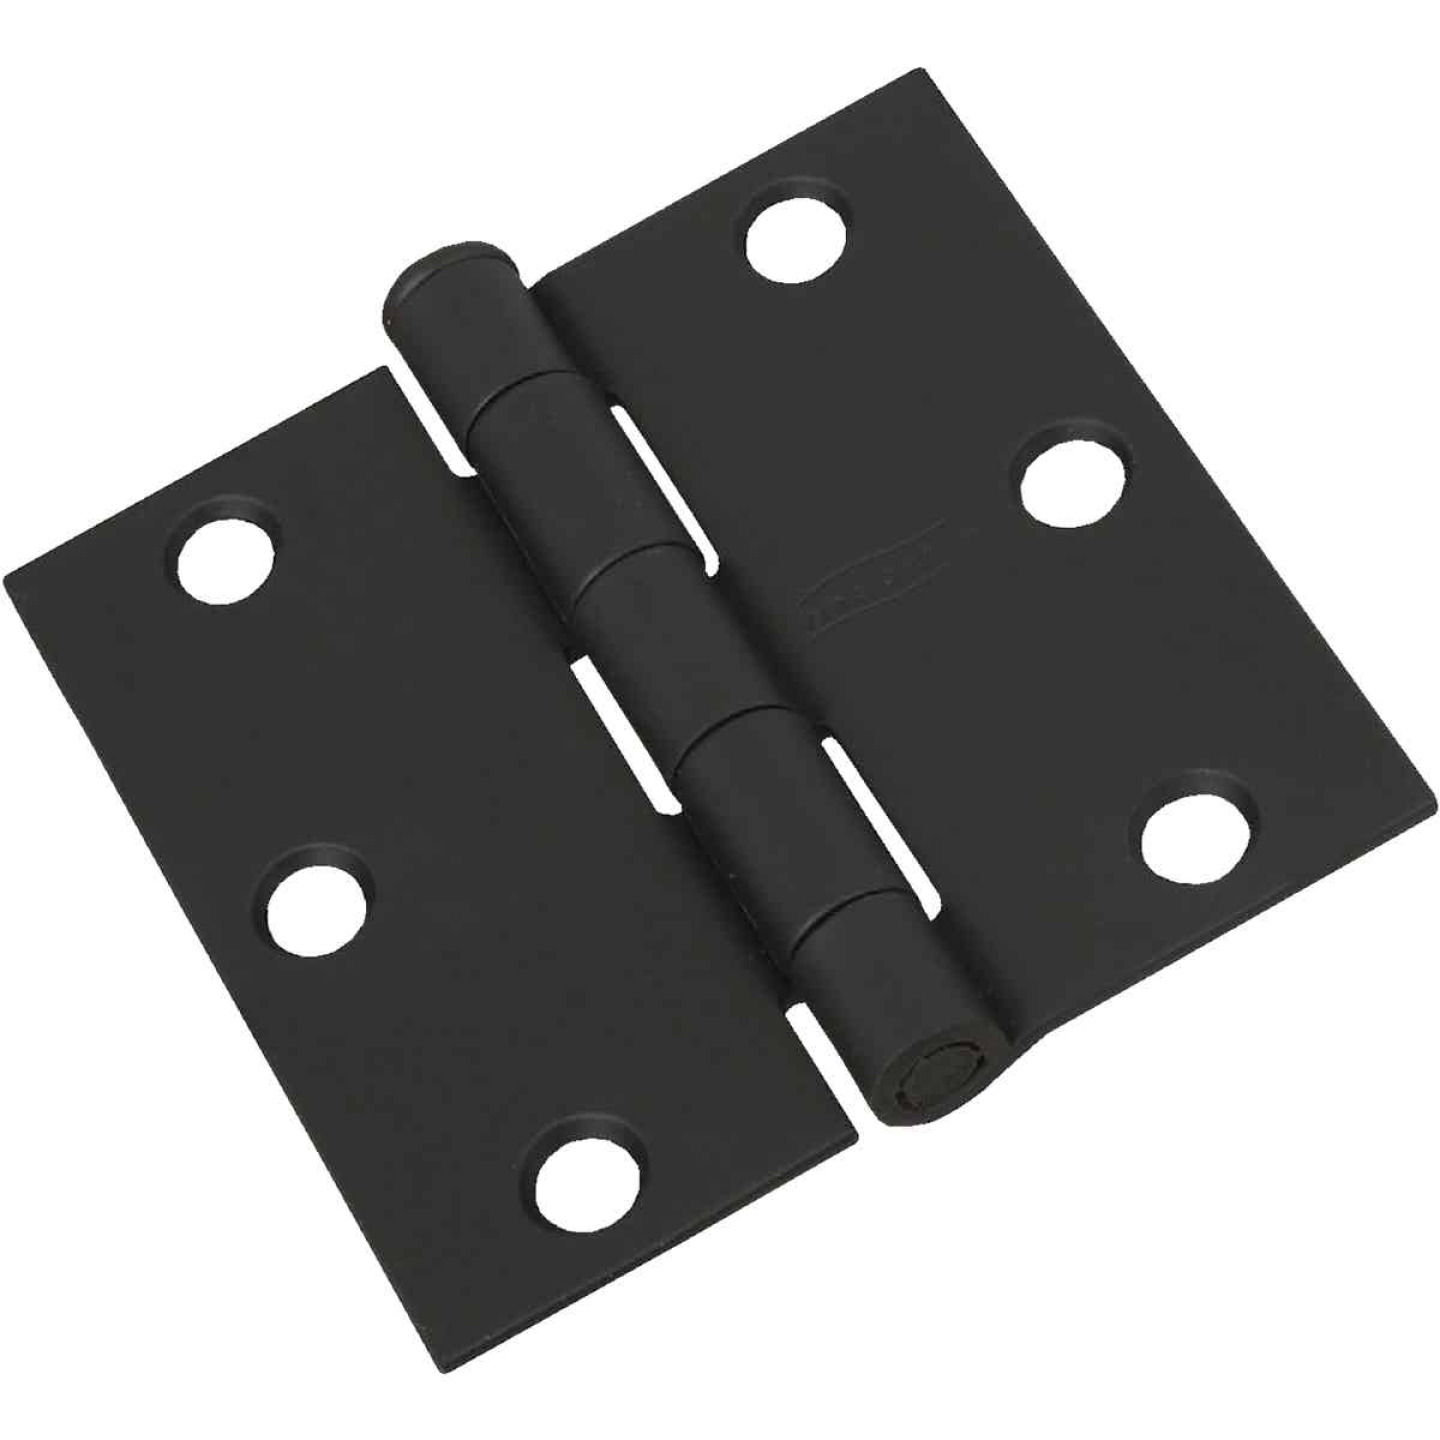 National 3 In. Square Black Door Hinge Image 1